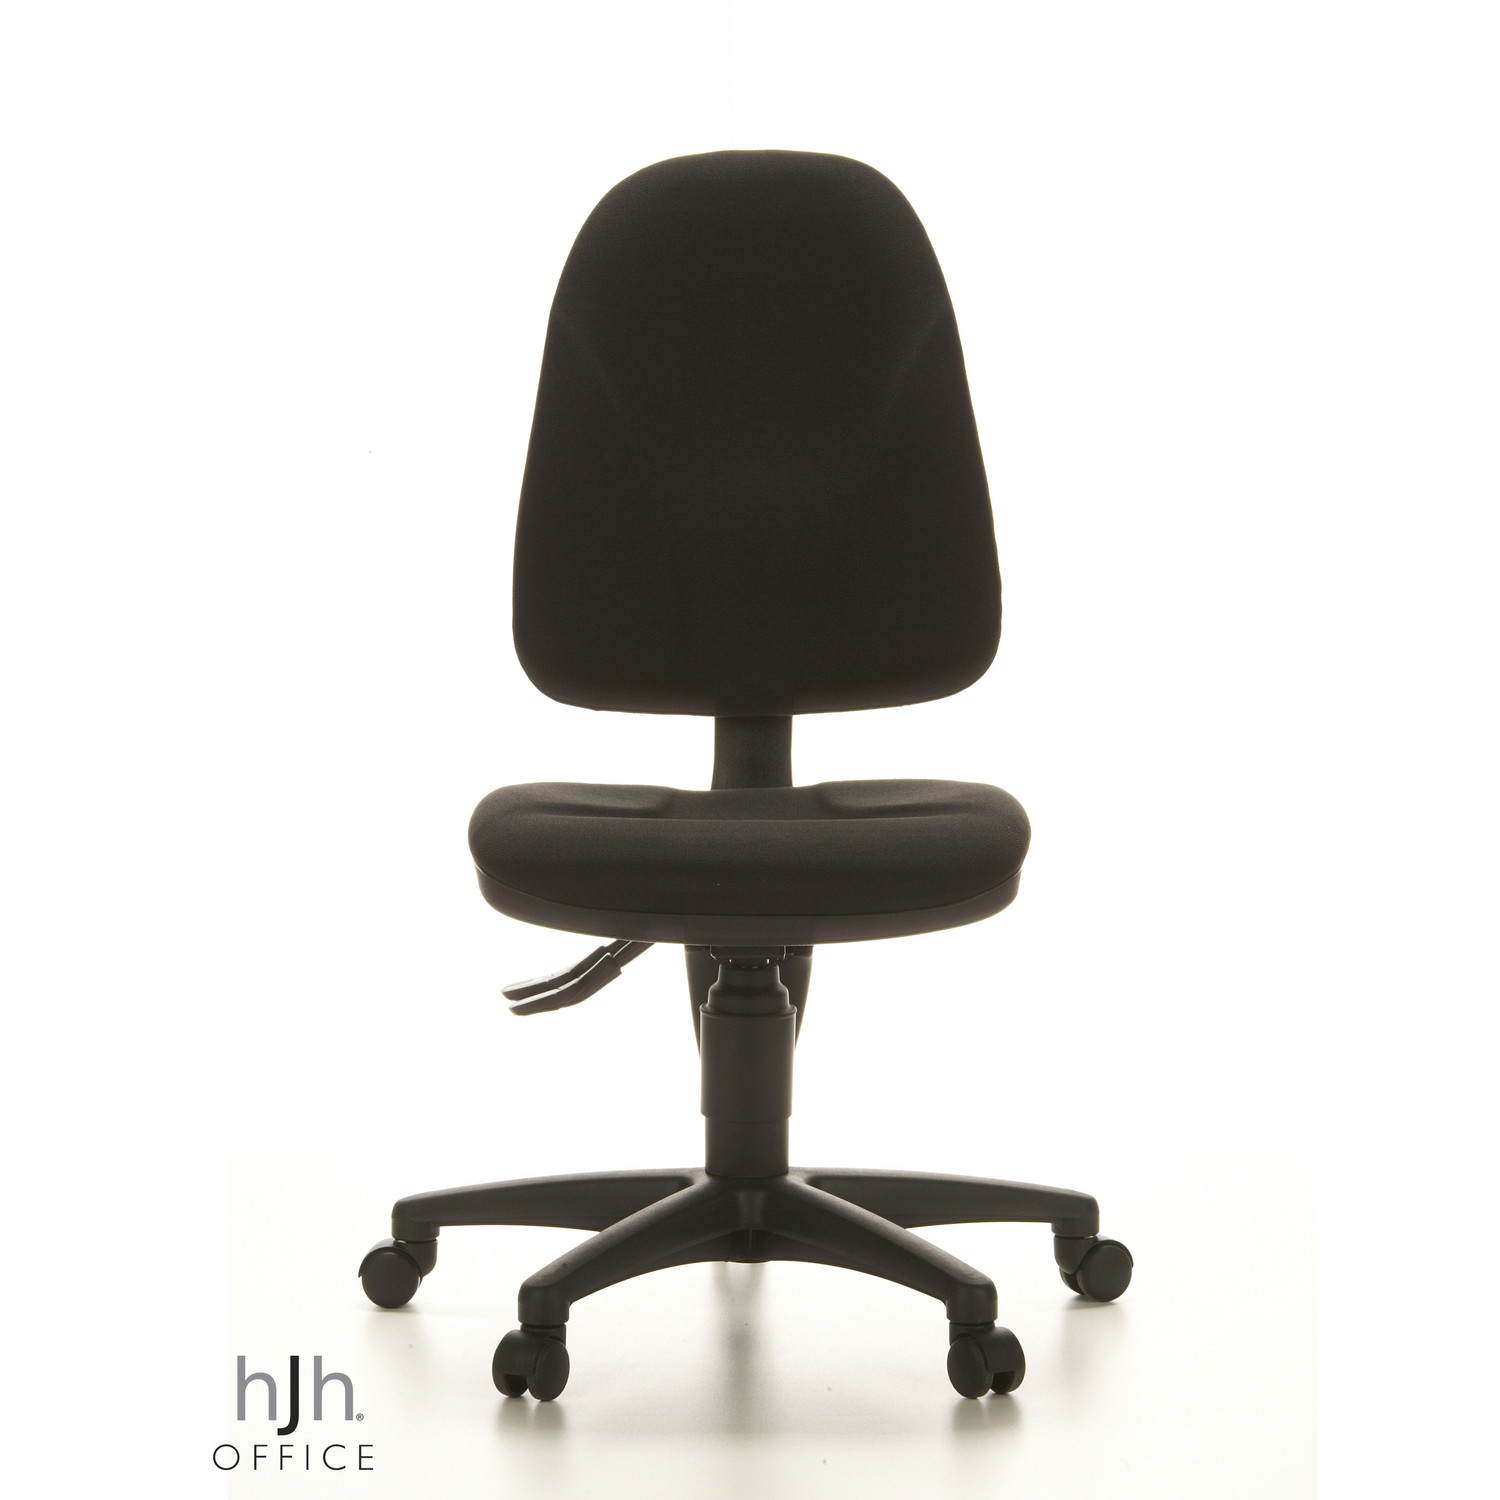 Silla ergon mica point homologada para 8 horas sin for Asiento de escritorio